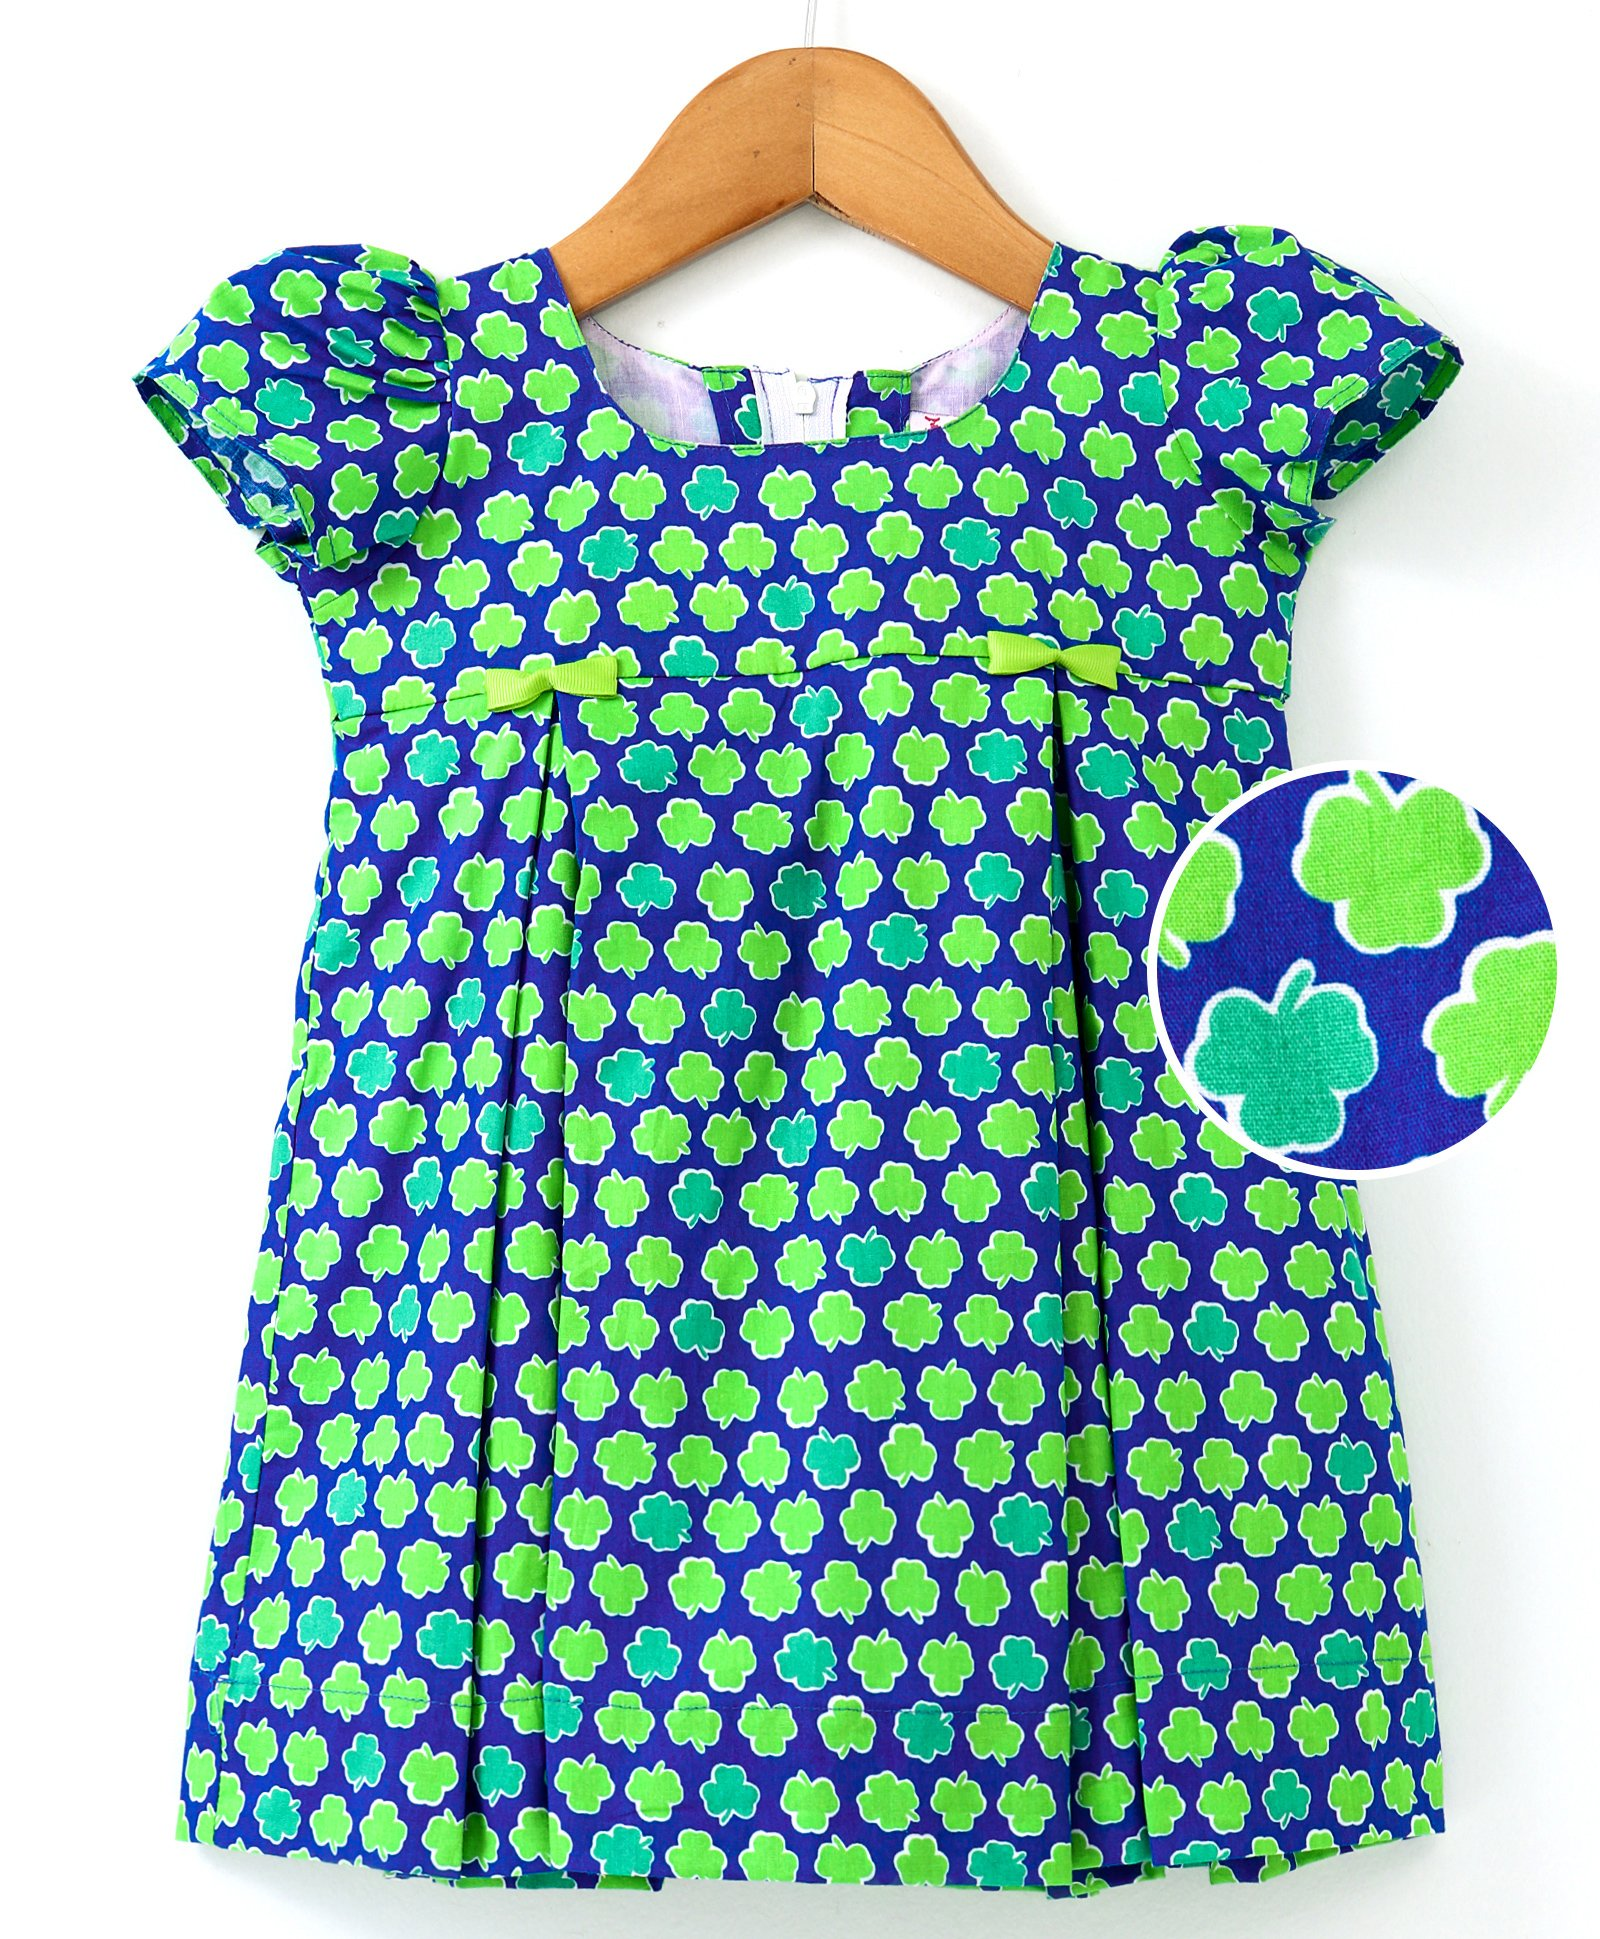 481e4a970db Buy Moms Girl Leaves Printed Short Sleeves Dress Green   Blue for ...